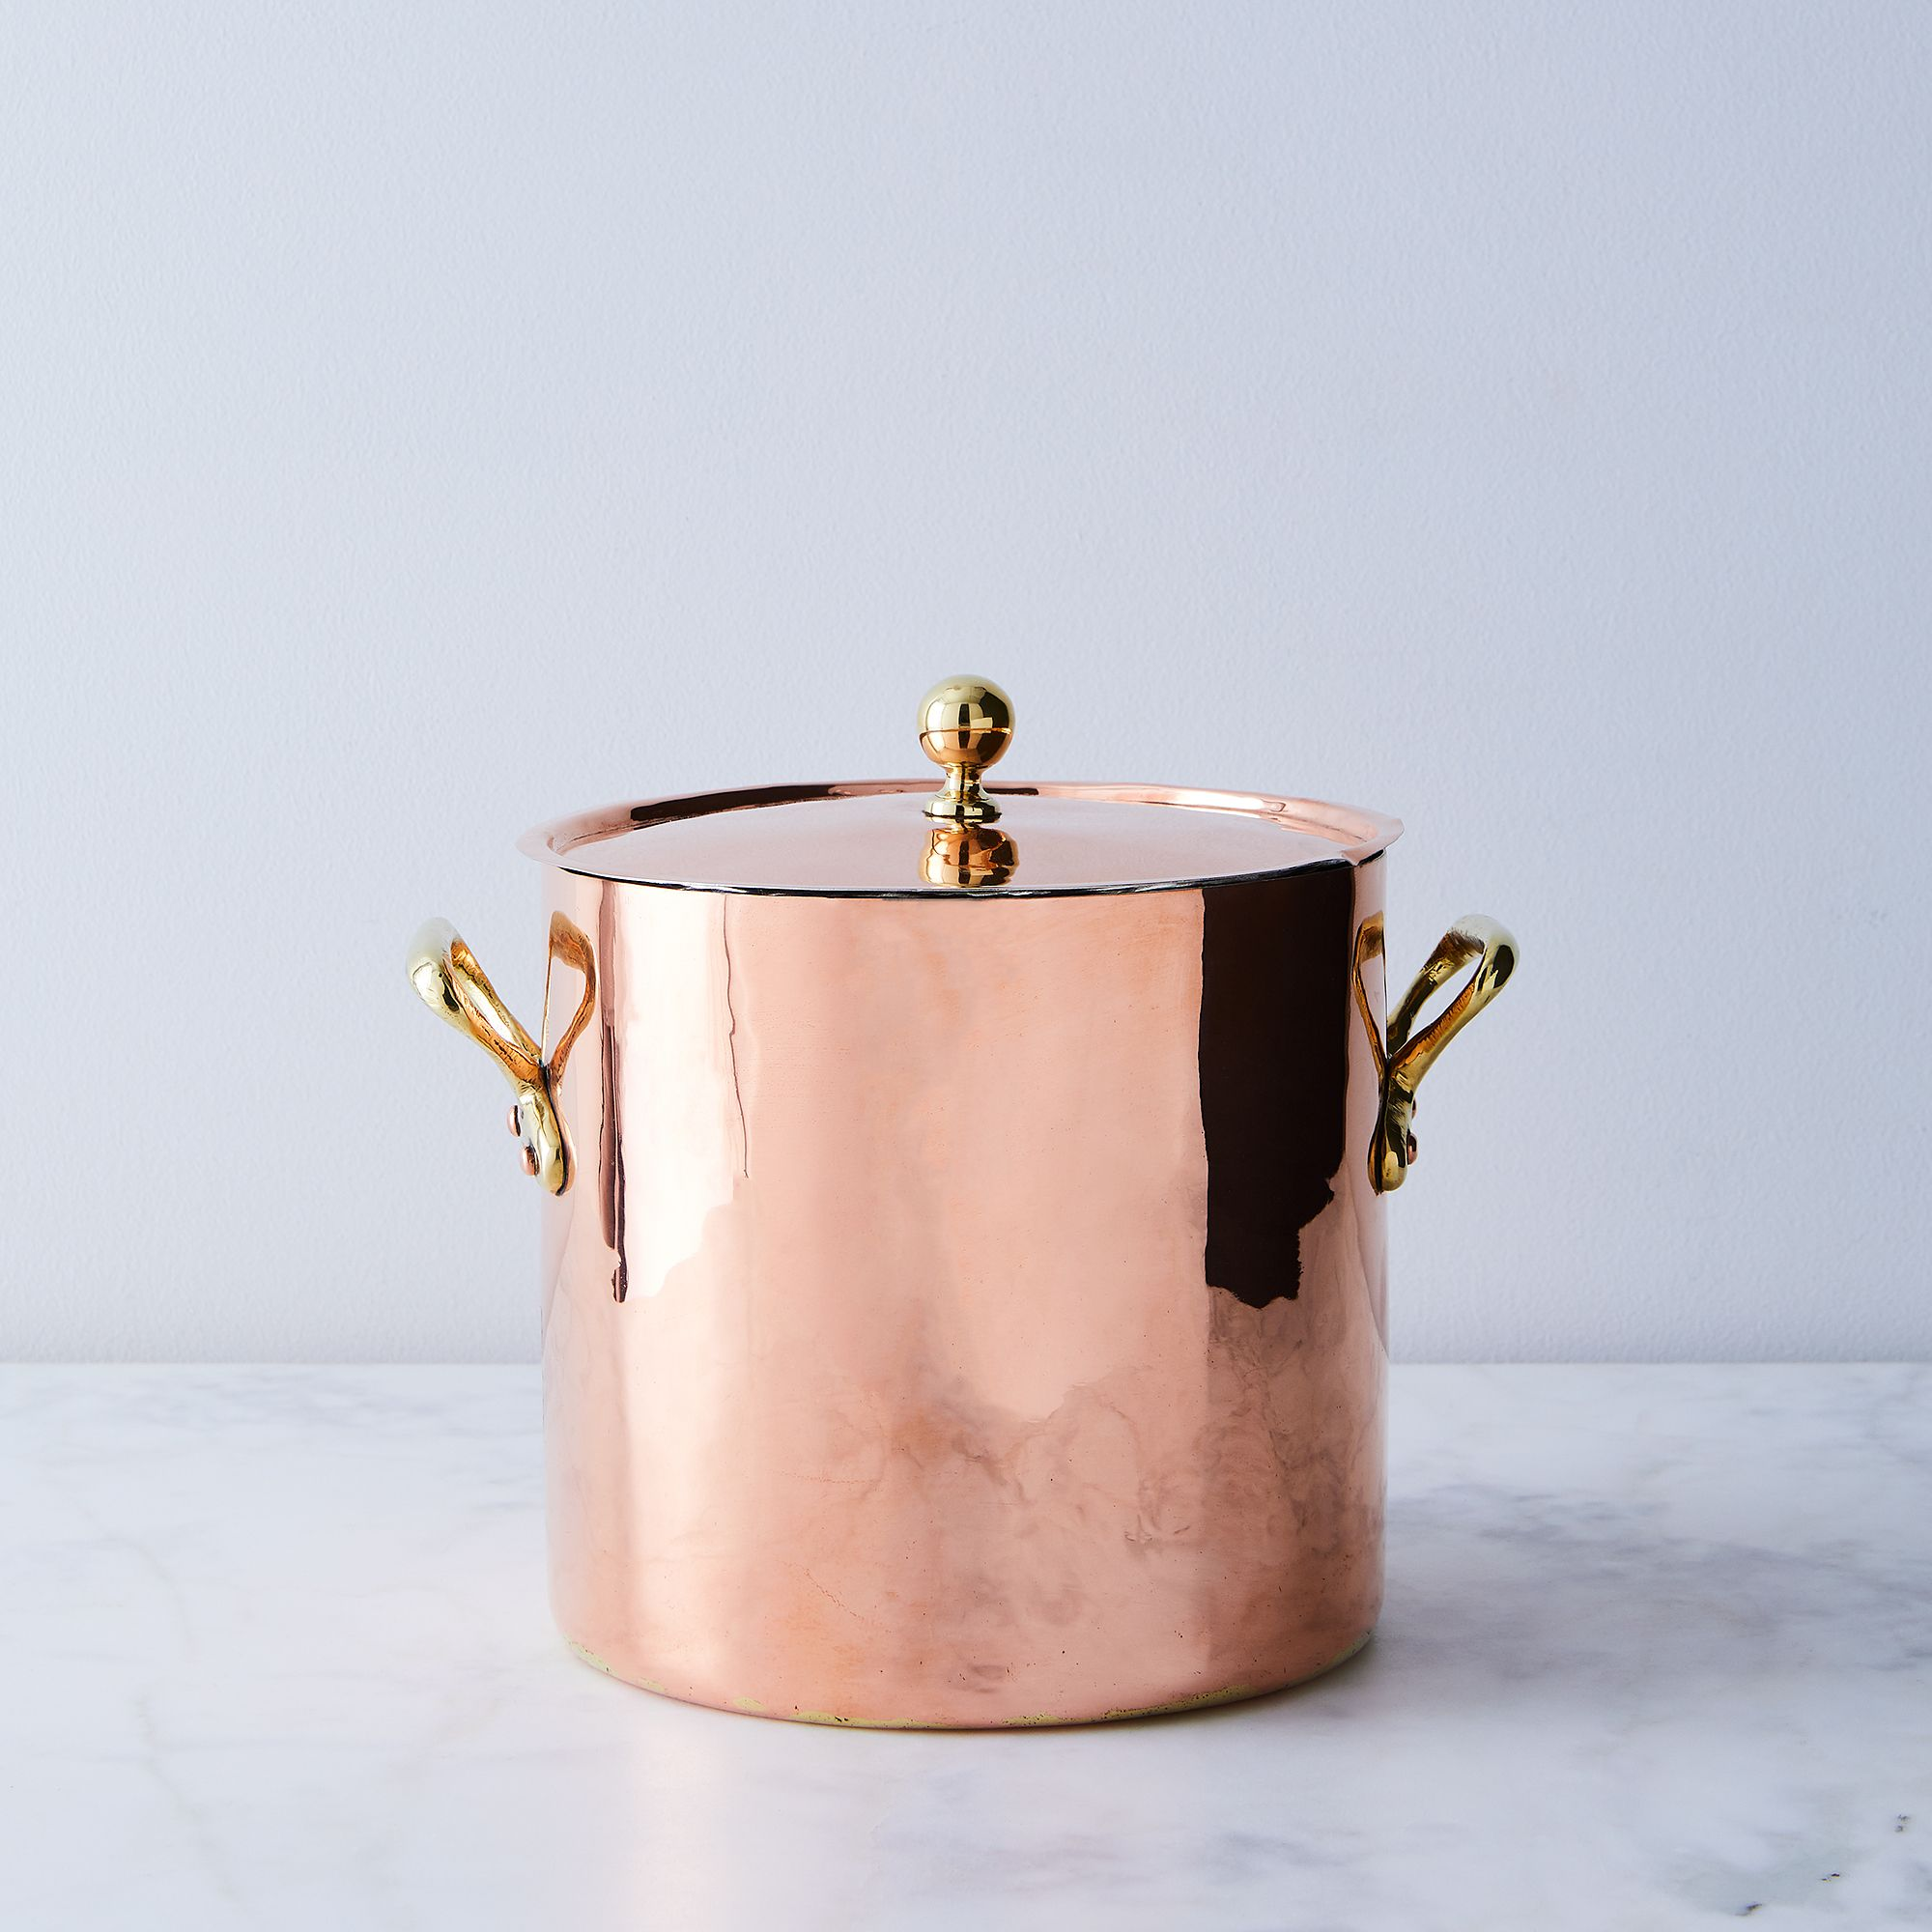 Vintage Copper French Large Stockpot, Late 19th Century - Medium